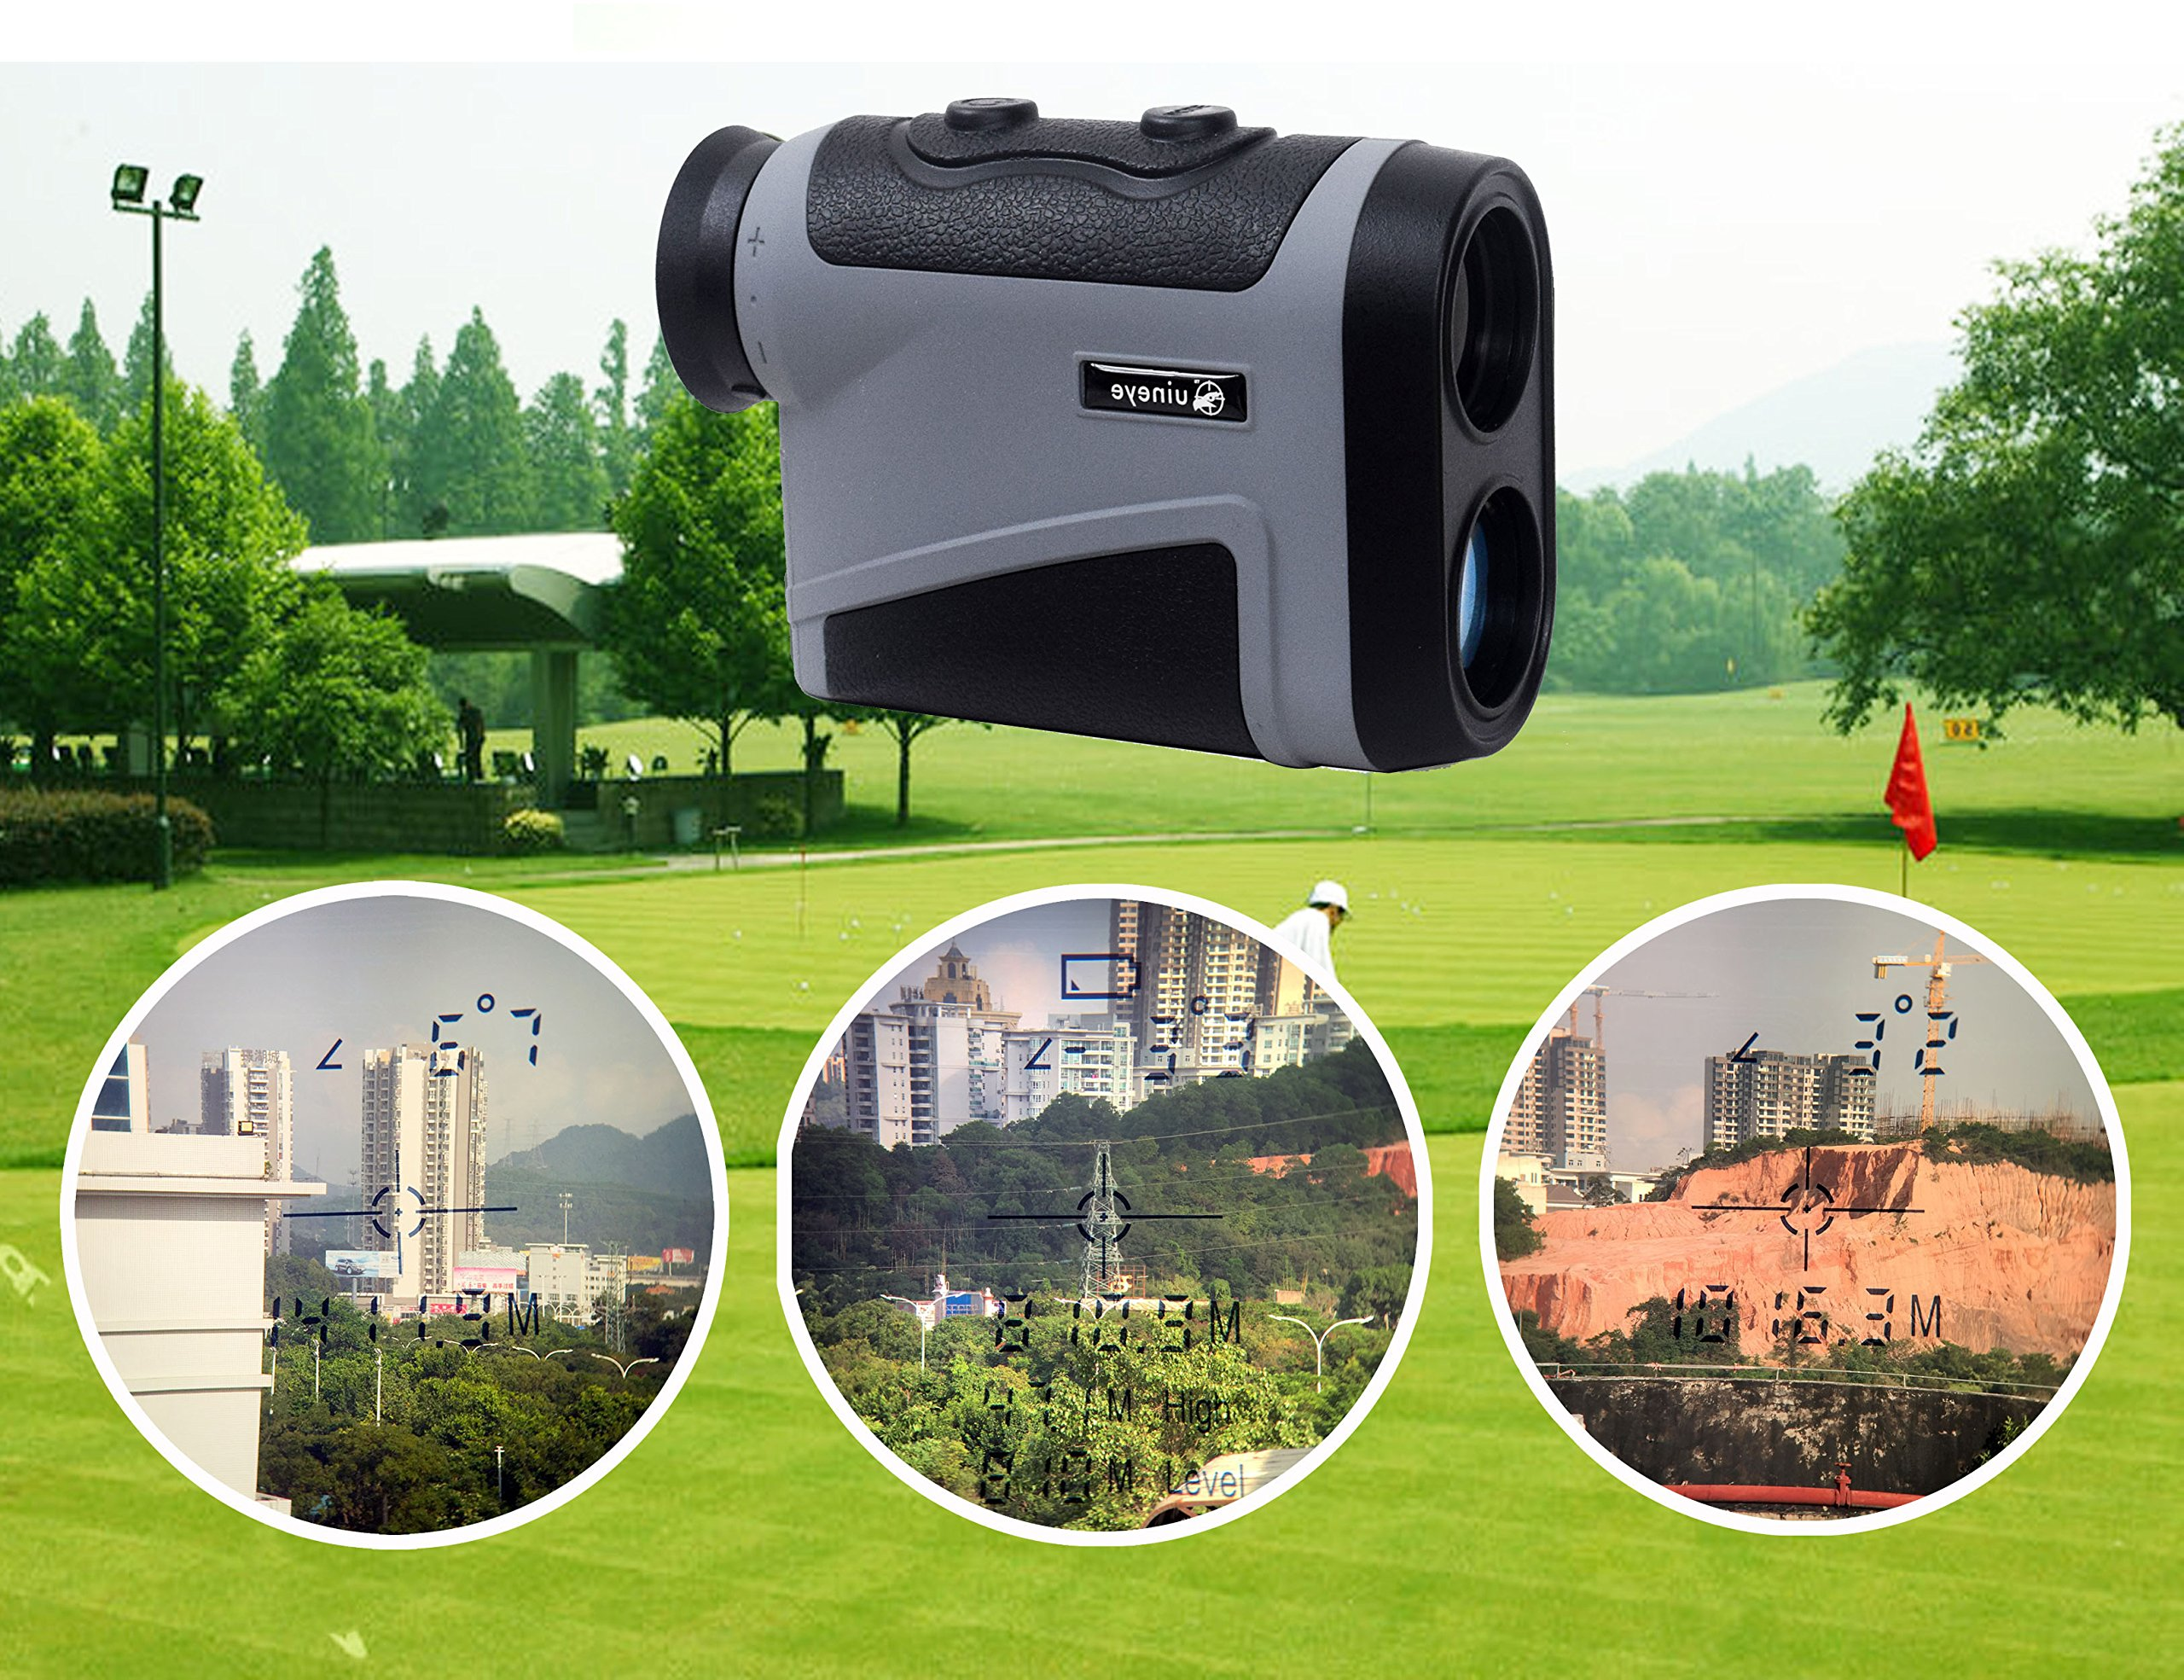 Uineye Golf Rangefinder - Range : 5-1950 Yards, 0.33 Yard Accuracy, Laser Rangefinder with Height, Angle, Horizontal Distance Measurement Perfect for Hunting, Golf, Engineering Survey (Grey) by Uineye (Image #7)